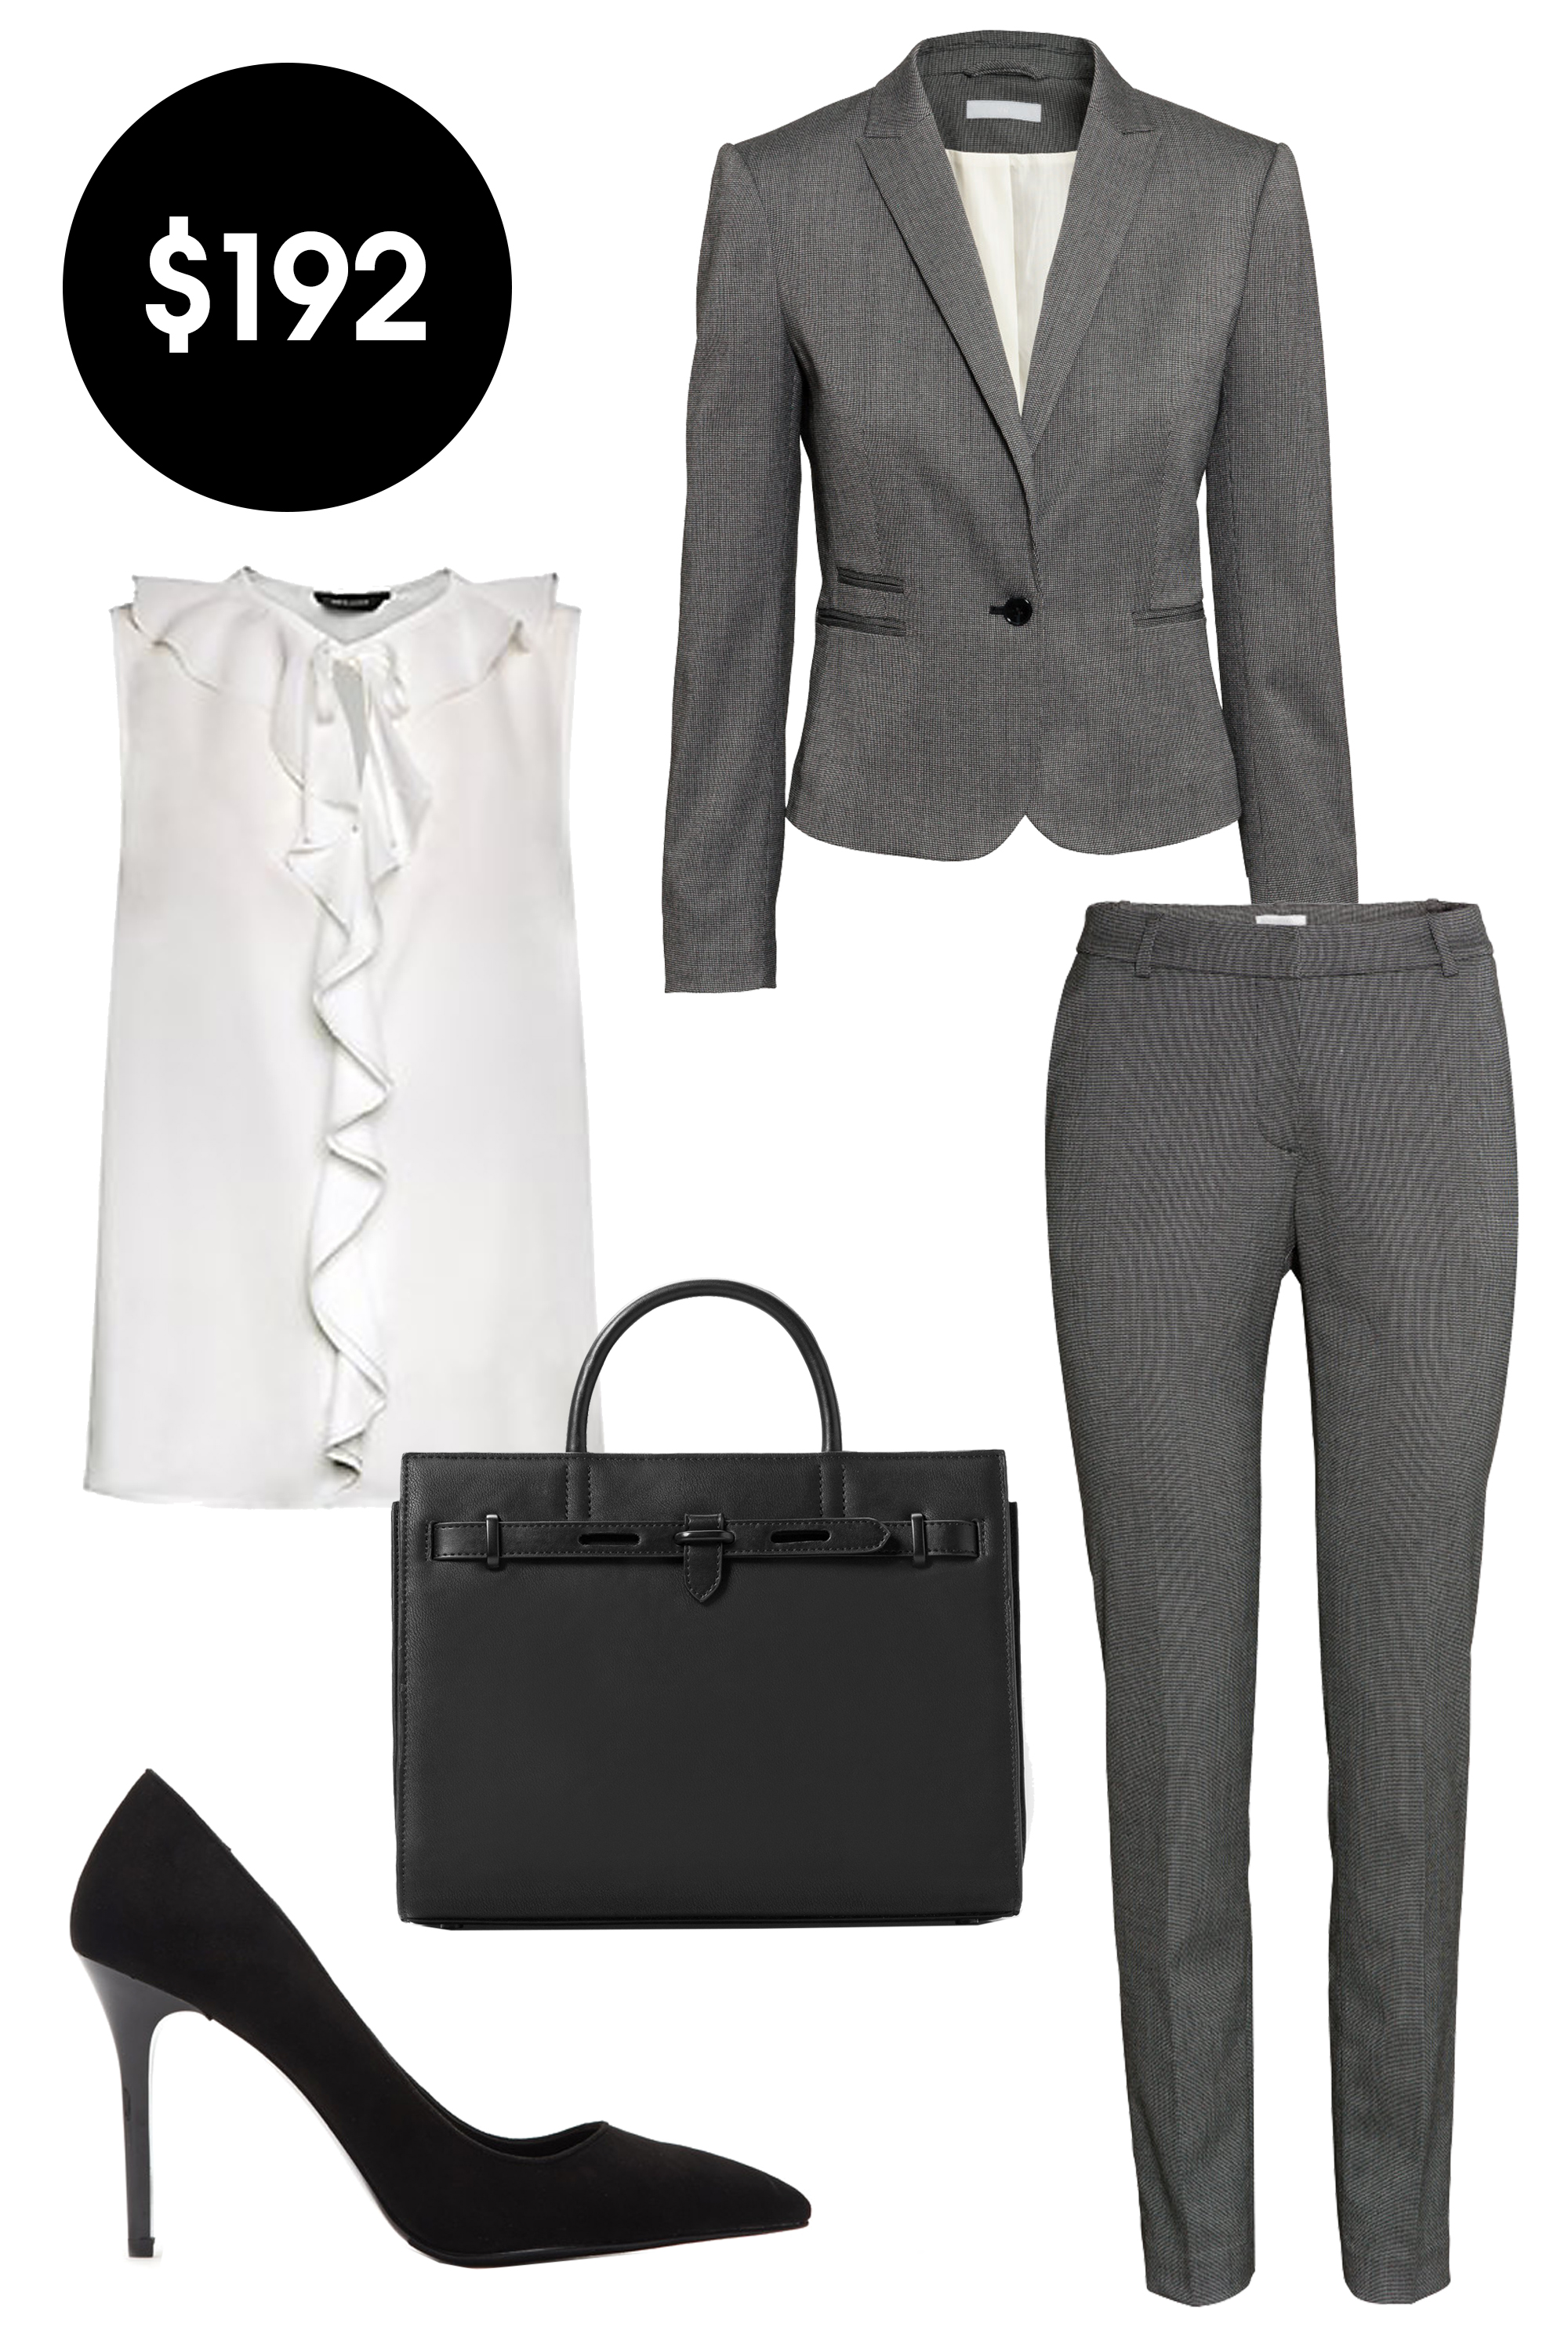 dress to impress 6 interview outfits under 200